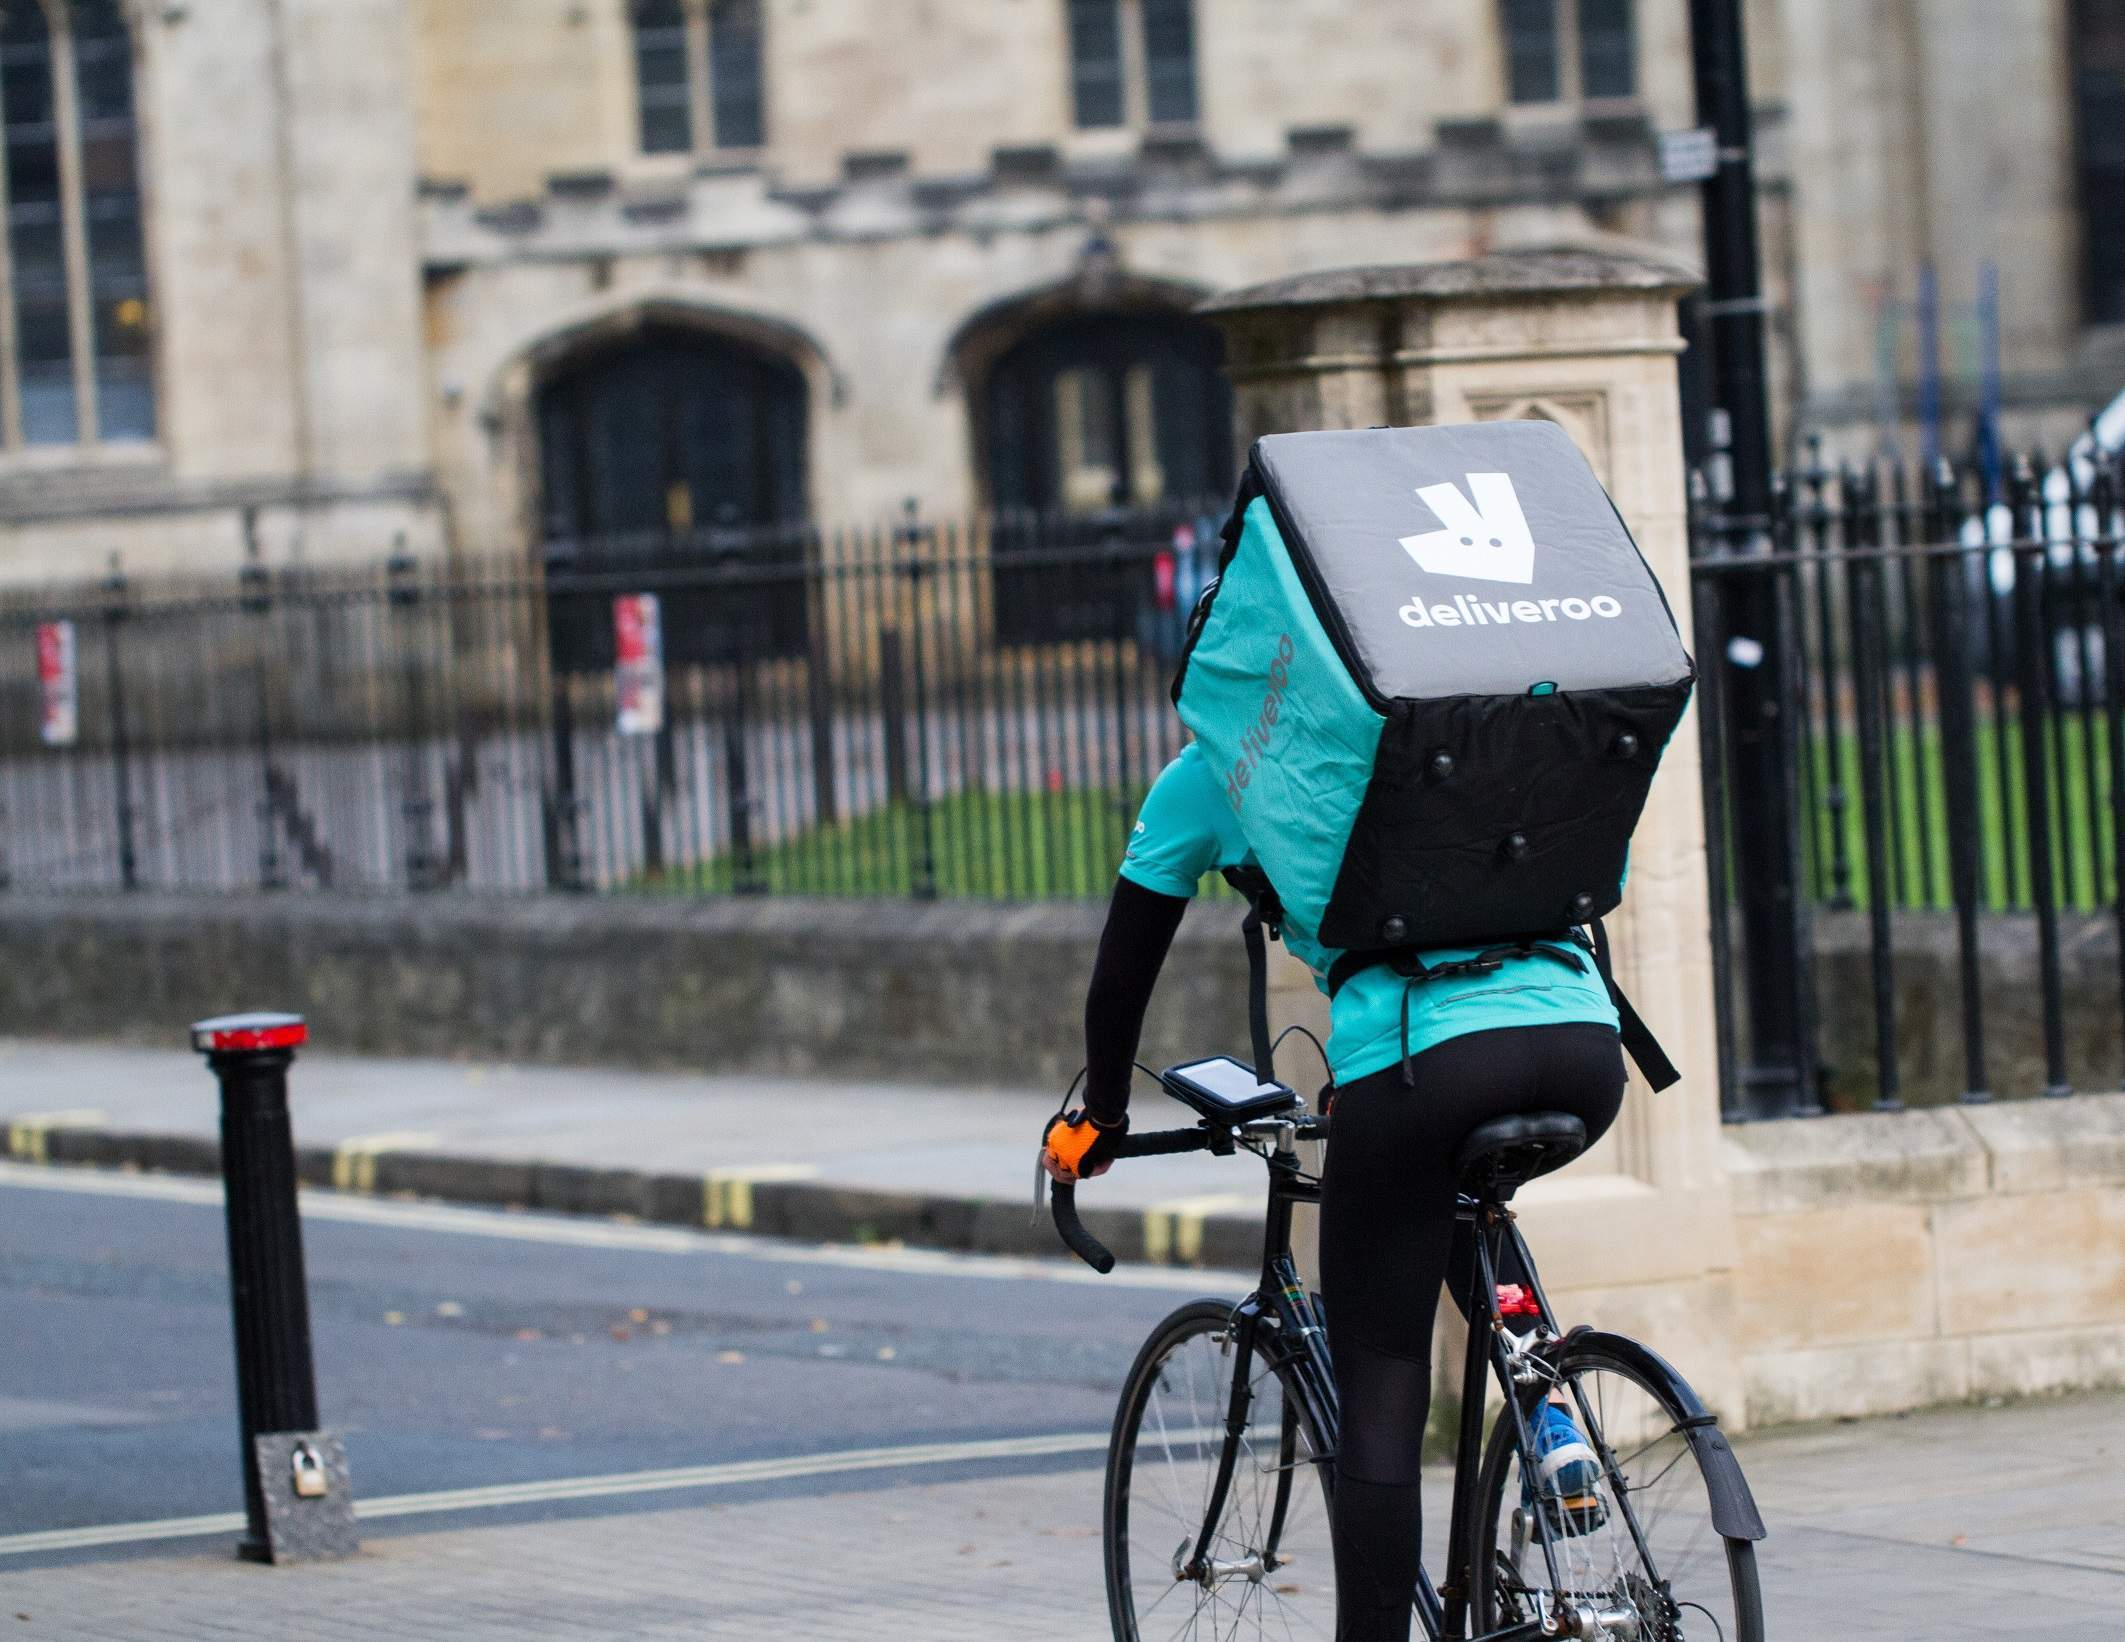 Amazon's 16% stake in Deliveroo gets approval